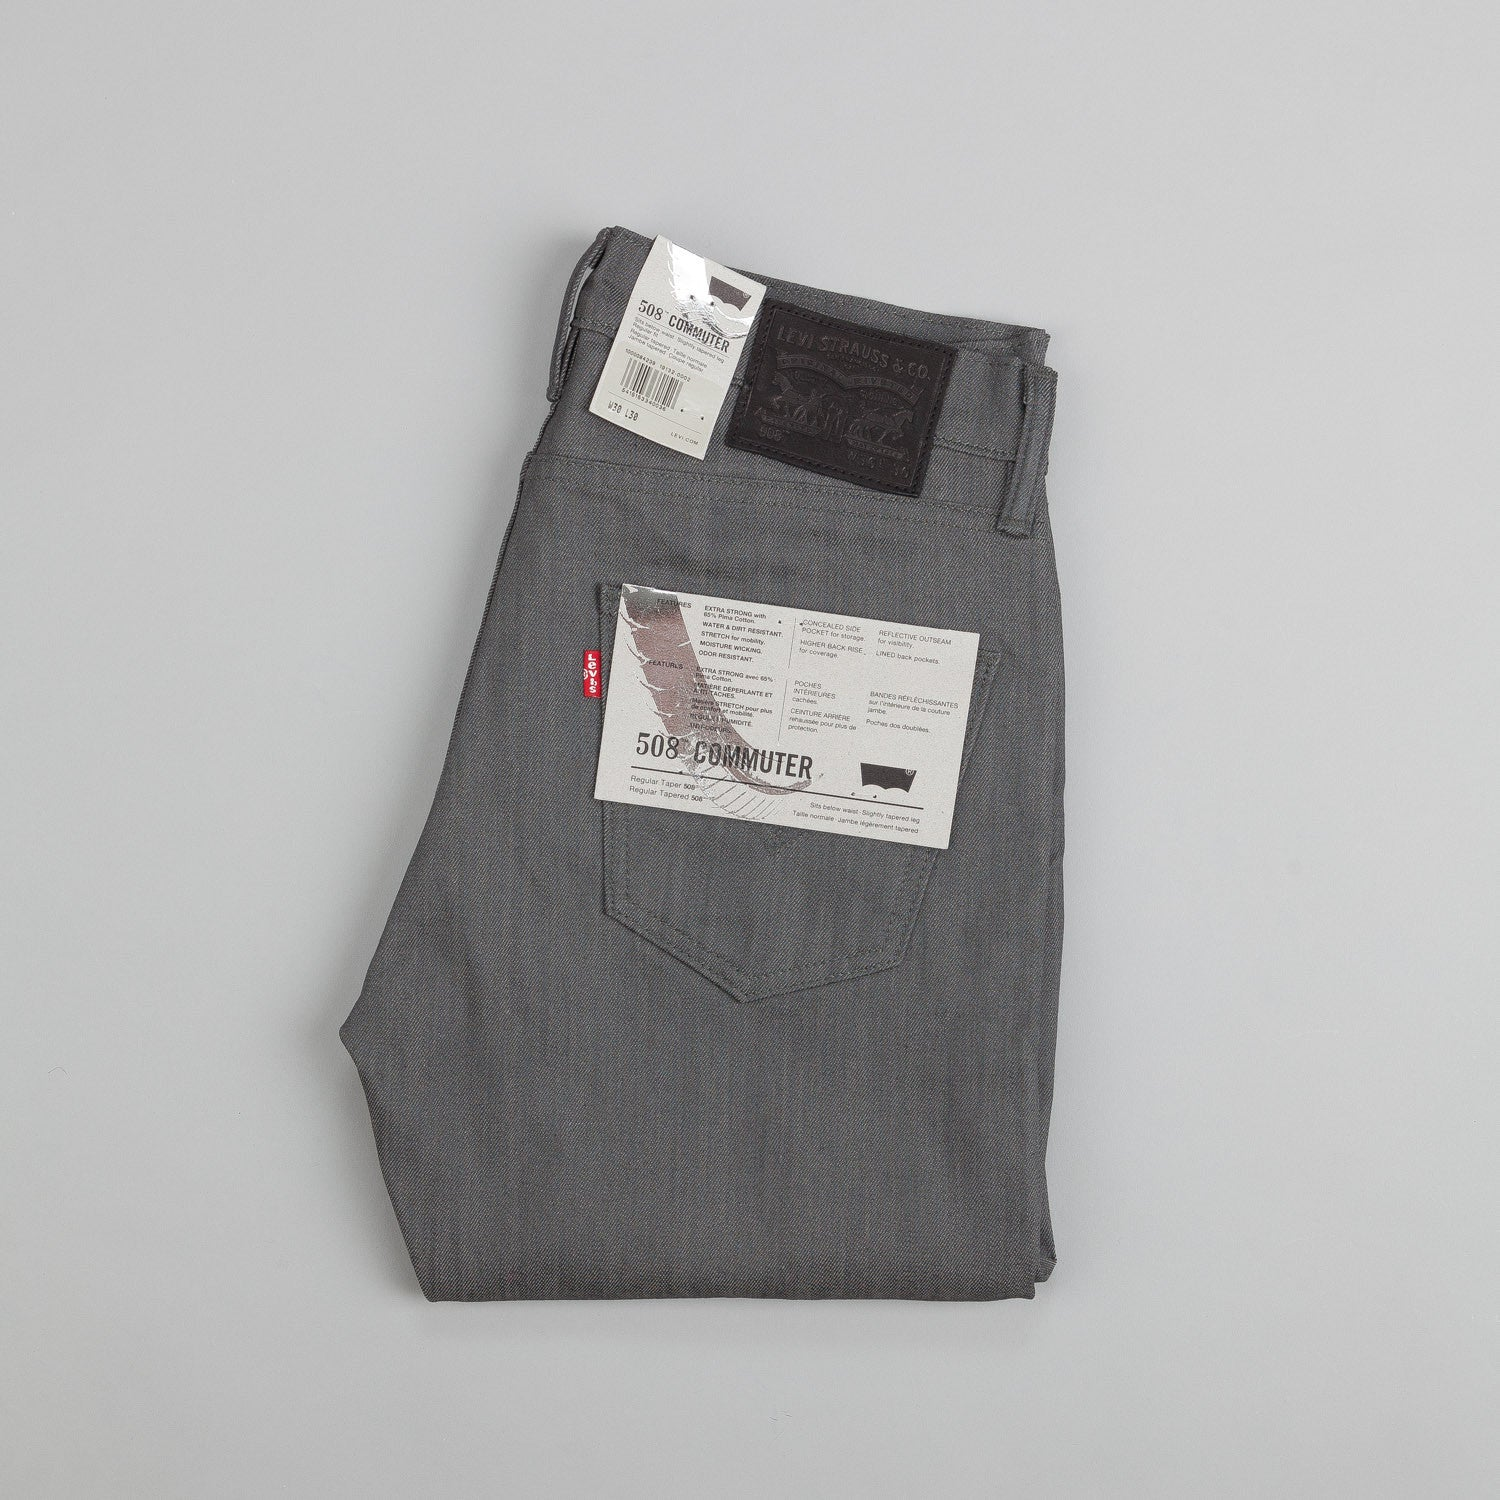 Levi's'® Commuter 508 Jeans Grey Denim Rigid